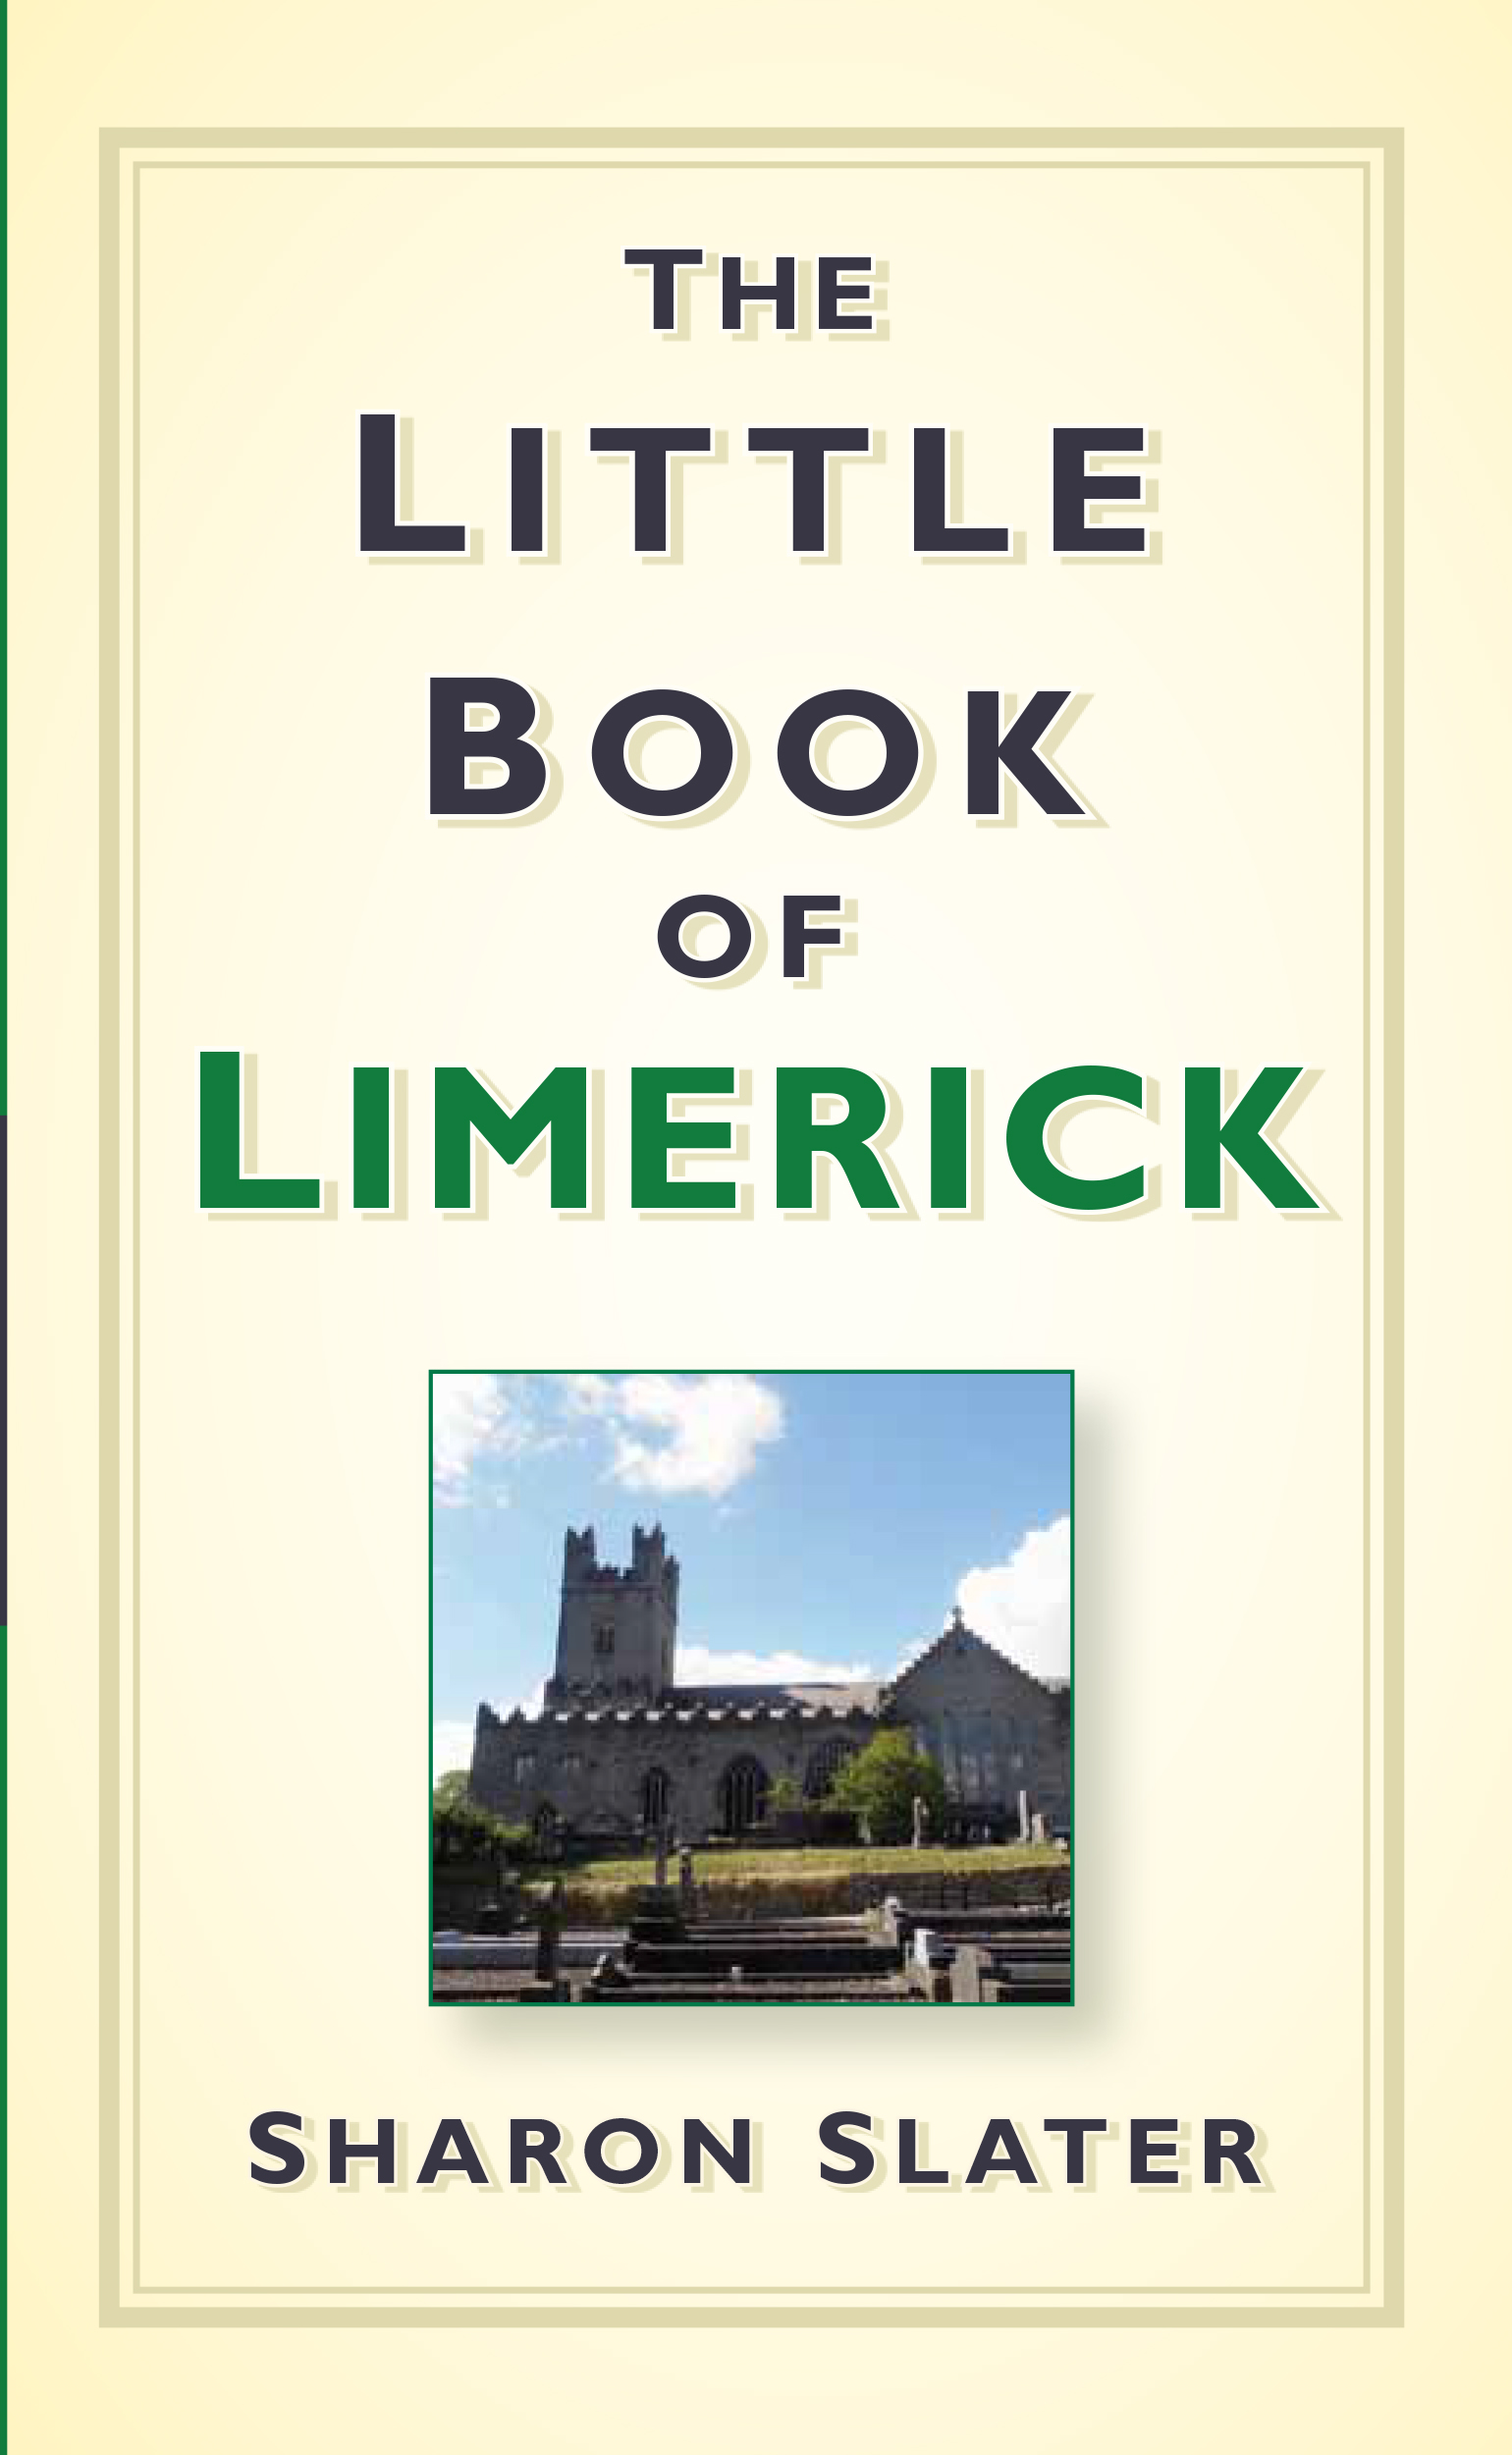 'The Little Book Of Limerick' a publication by Sharon Slater